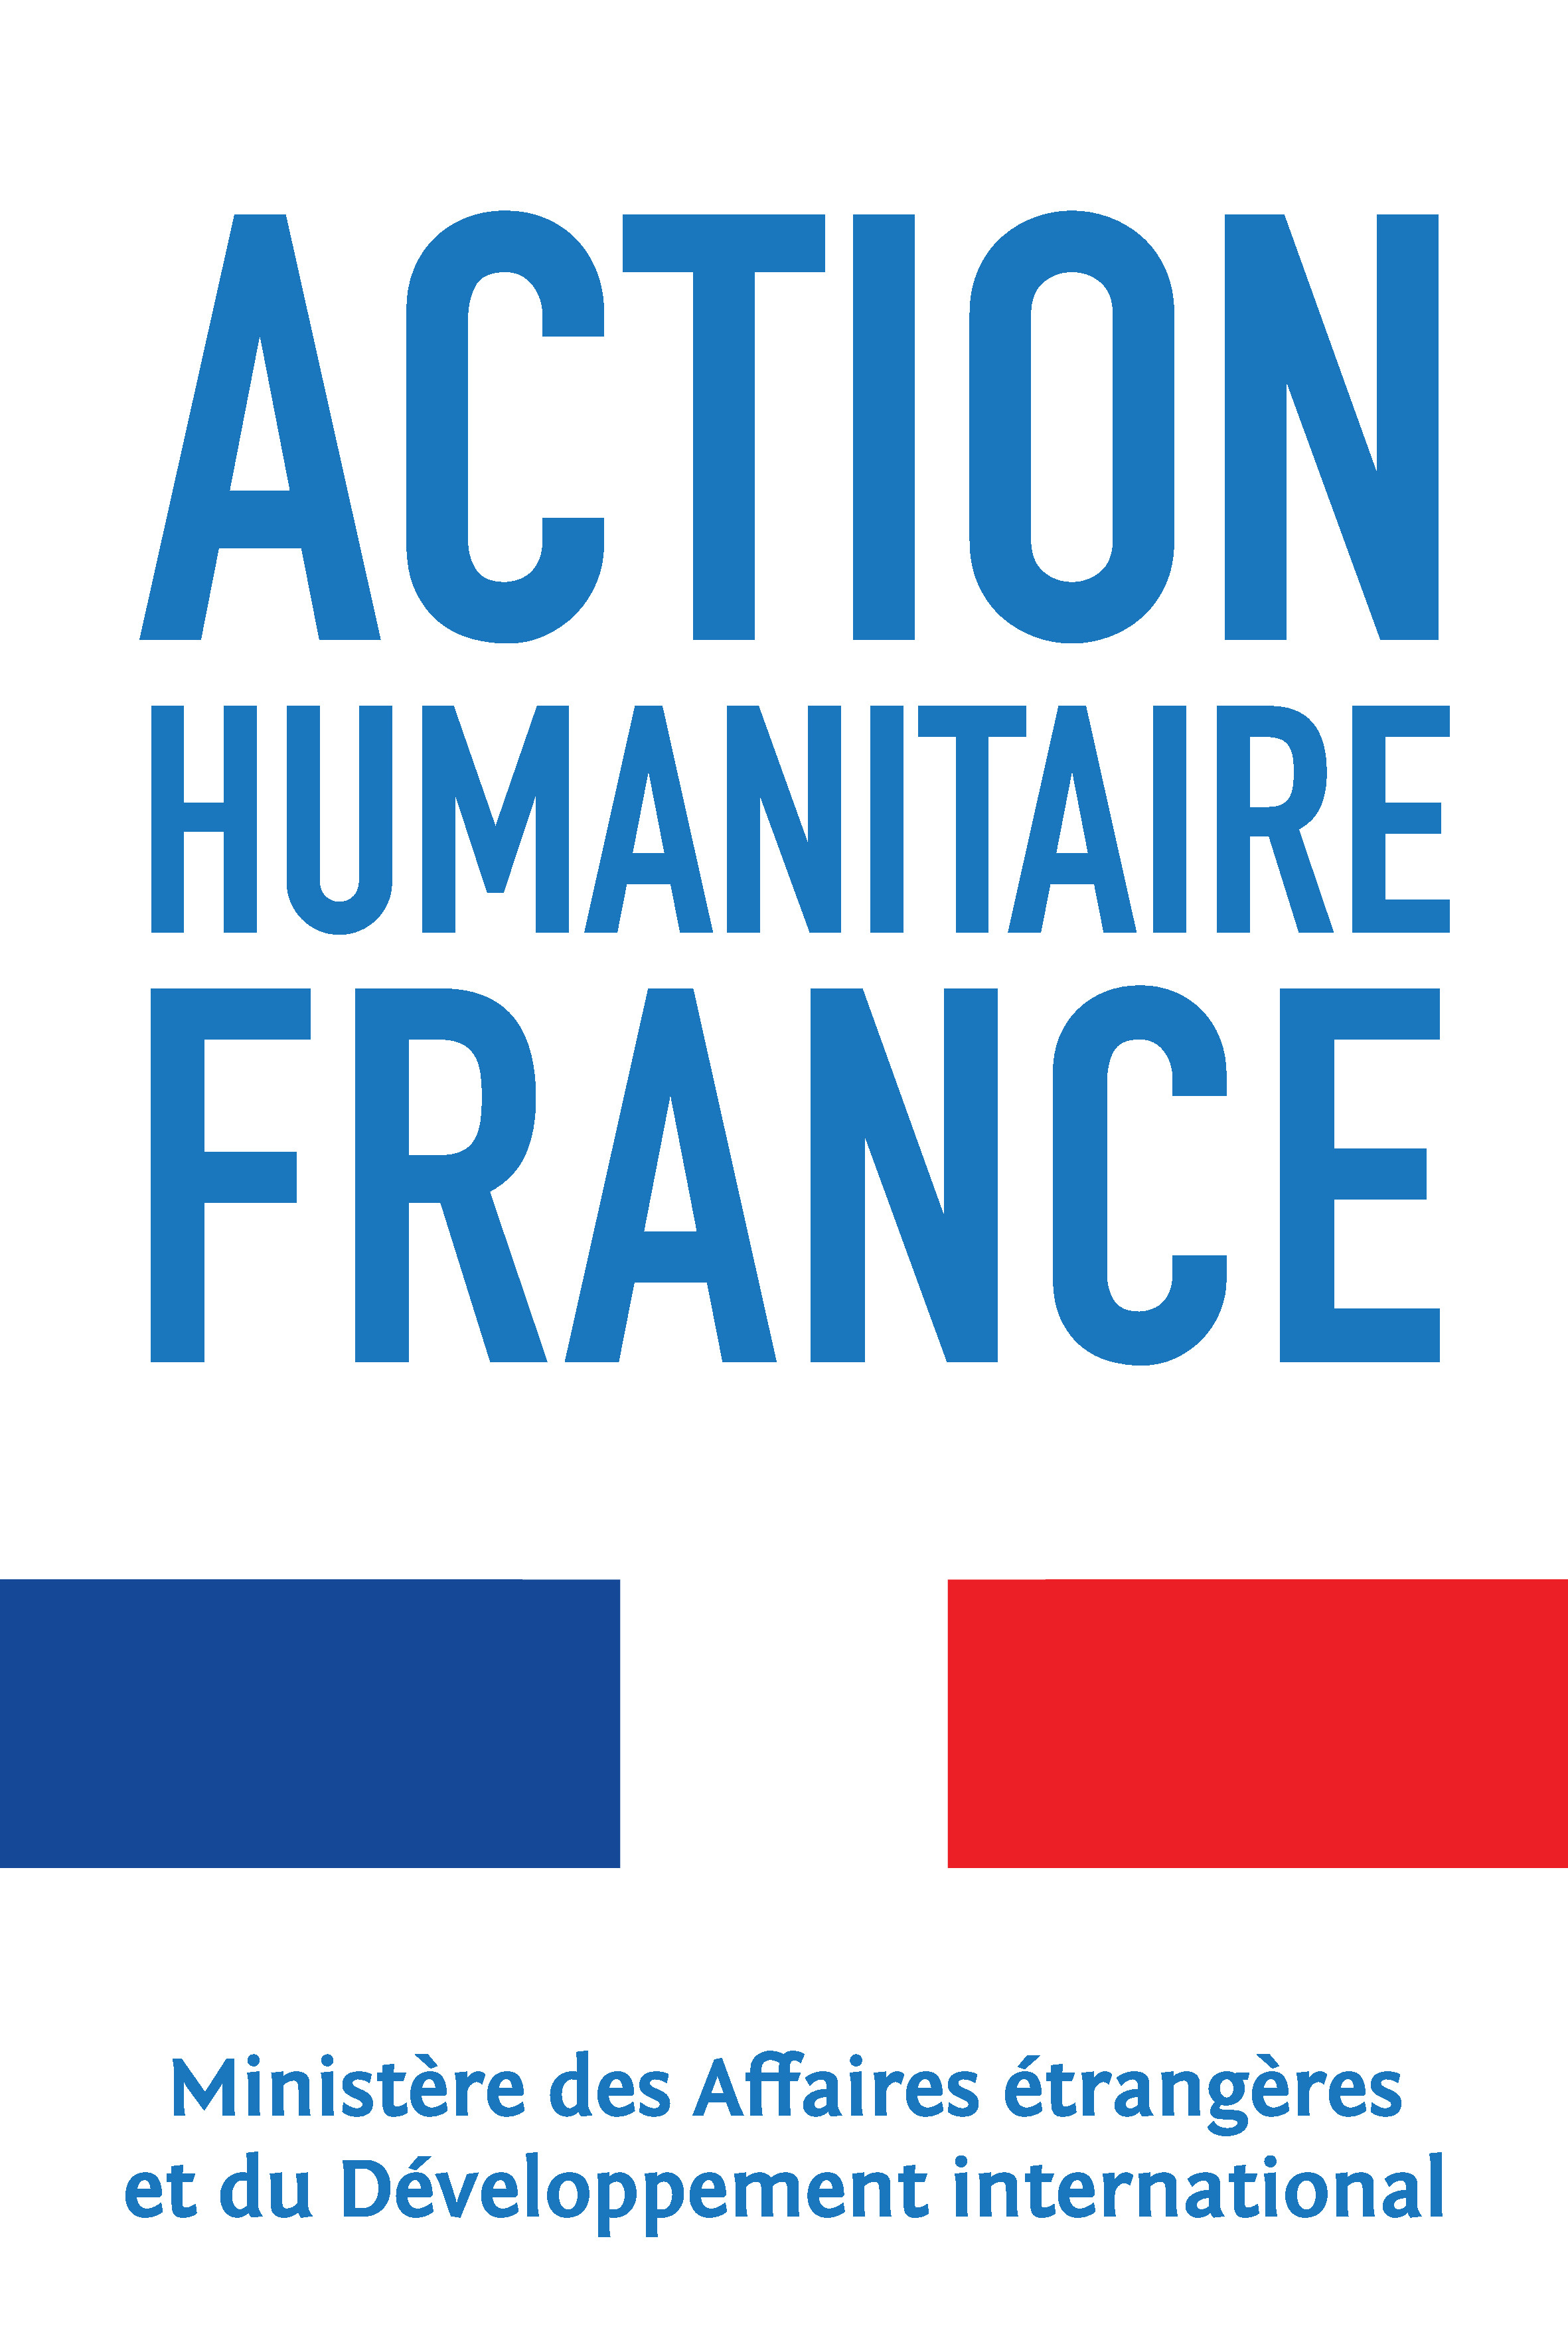 logo-action-humanitaire-france